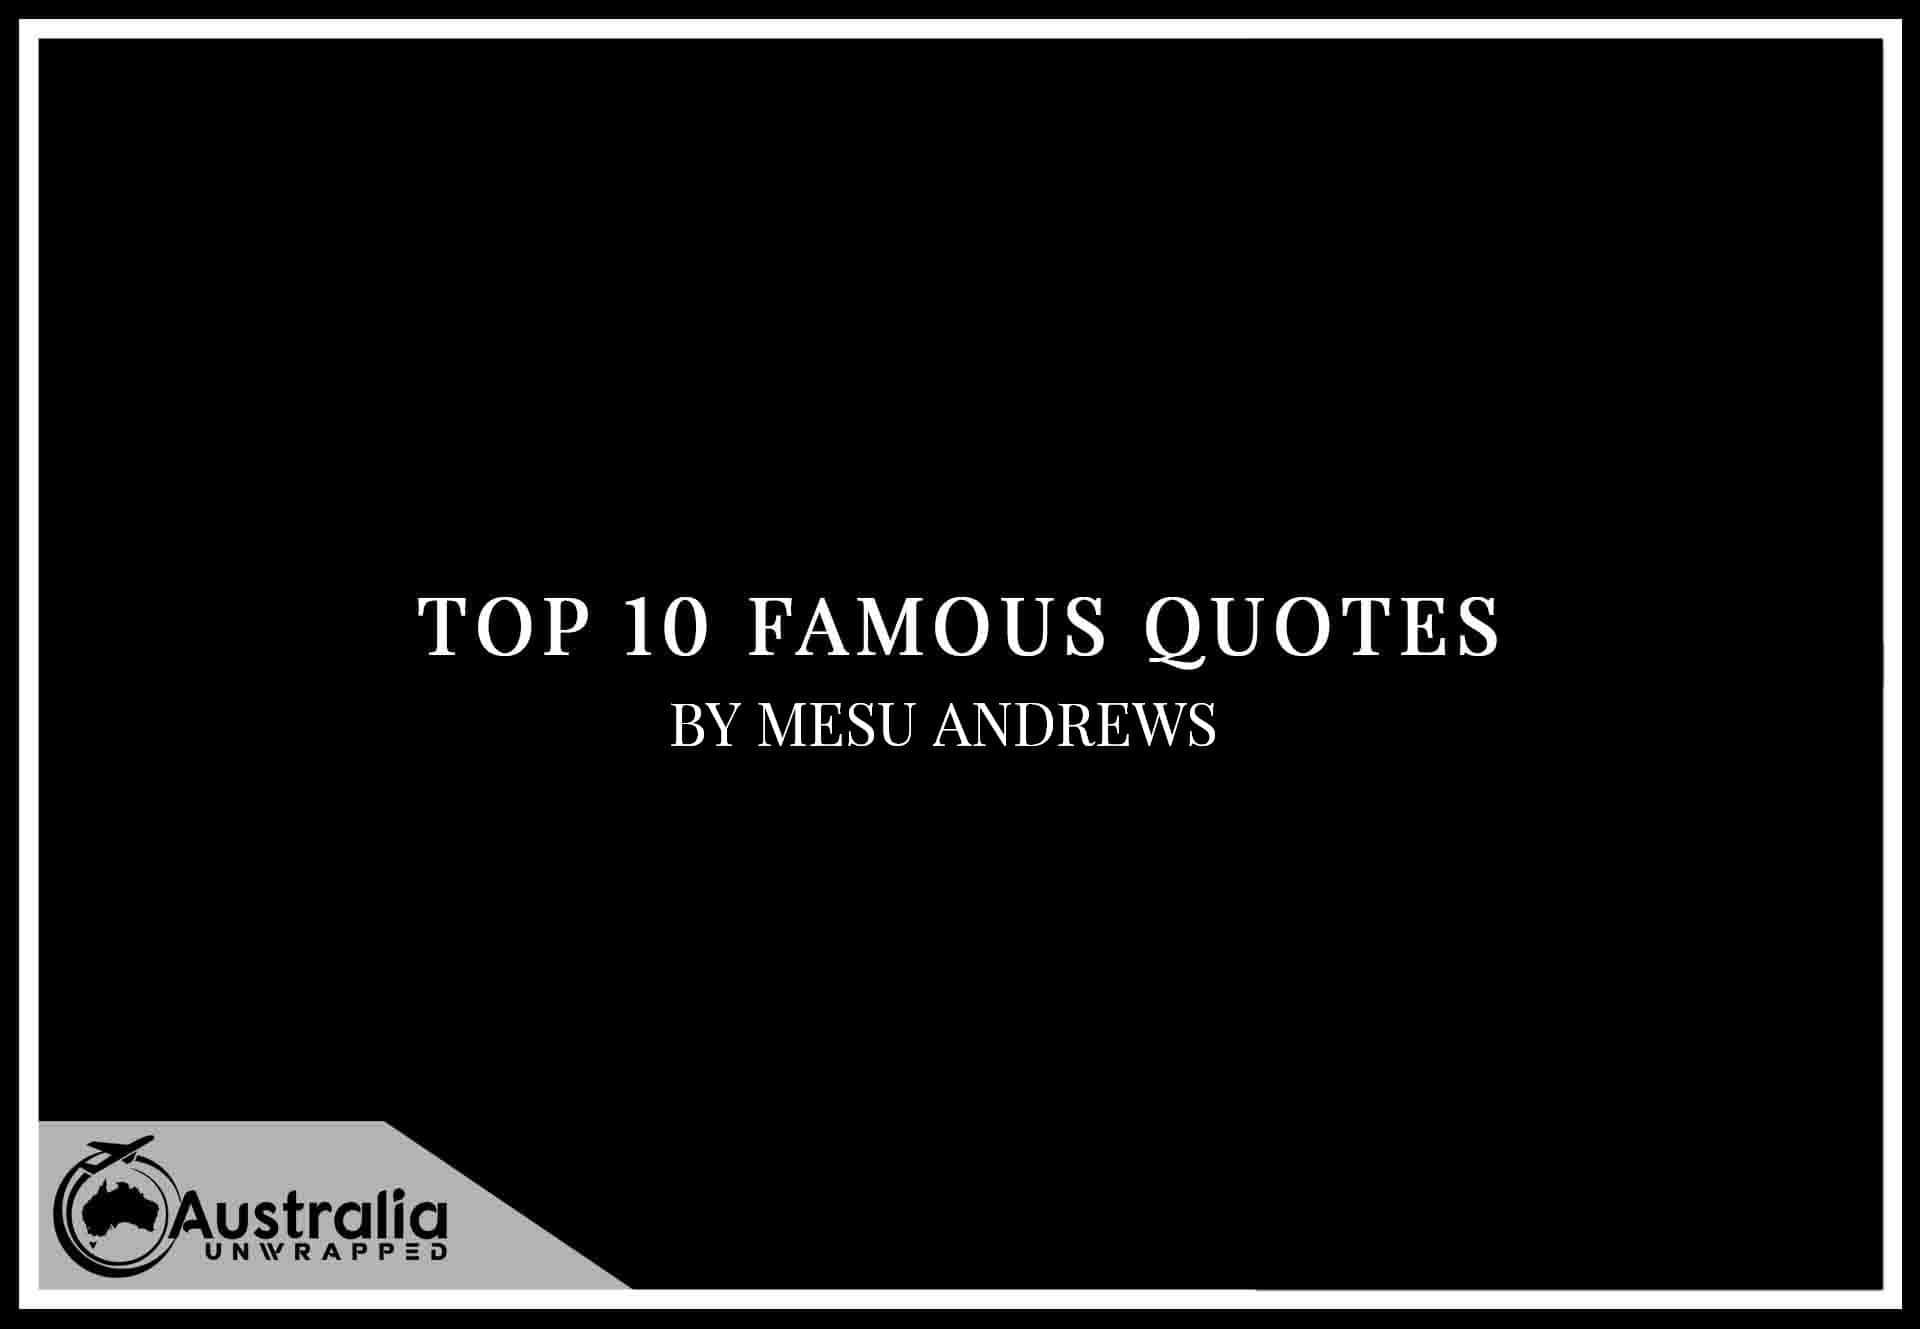 Top 10 Famous Quotes by Author Mesu Andrews